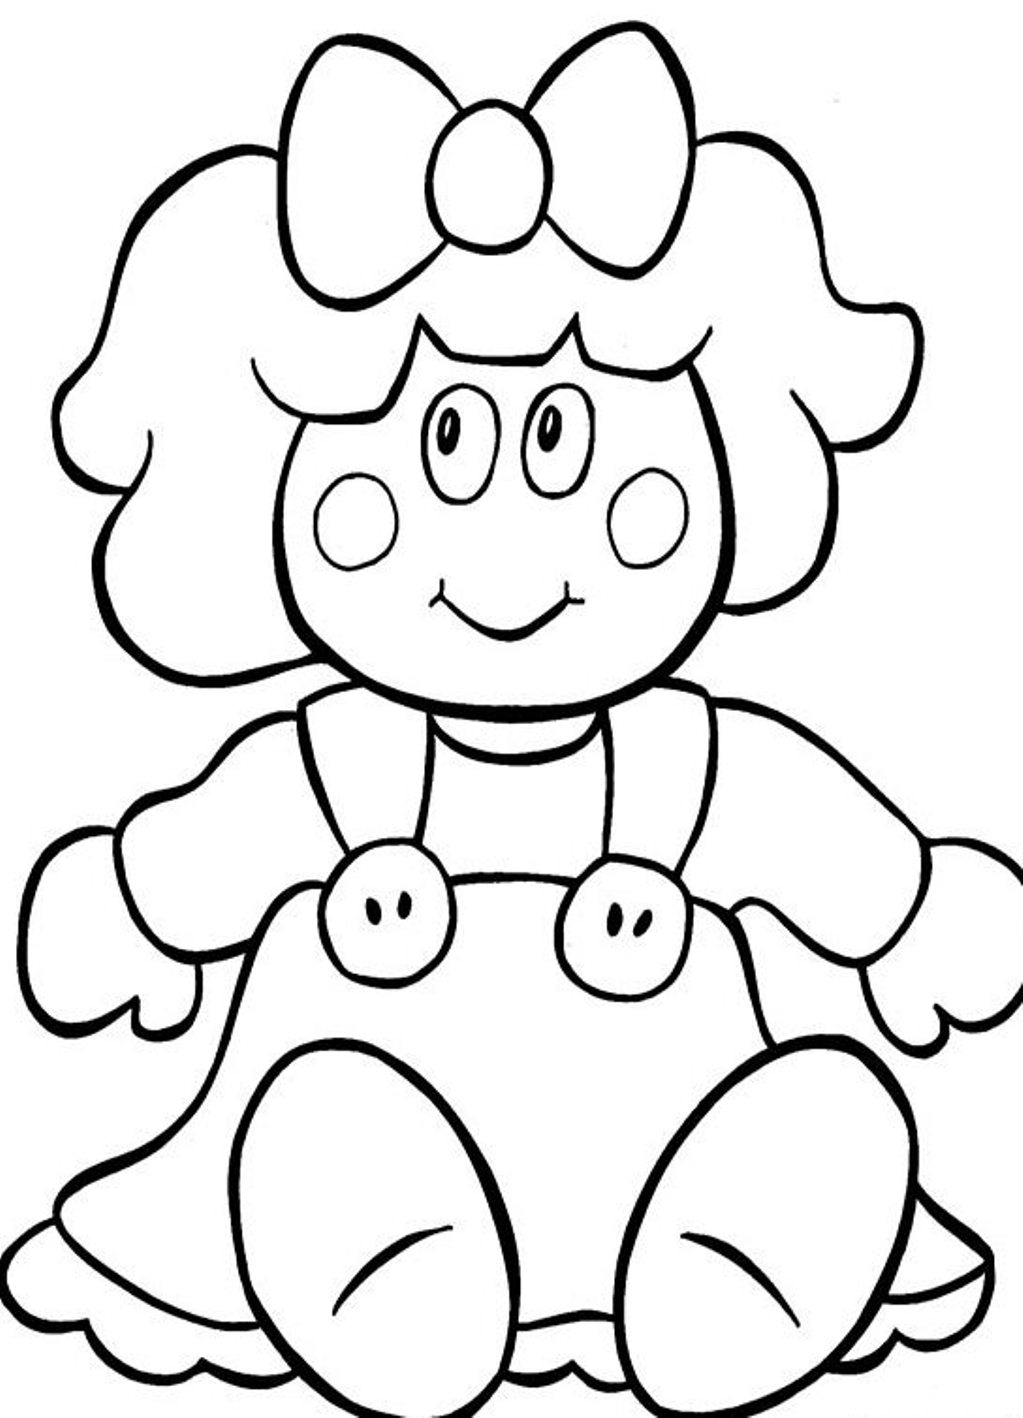 Doll coloring pages to download and print for free